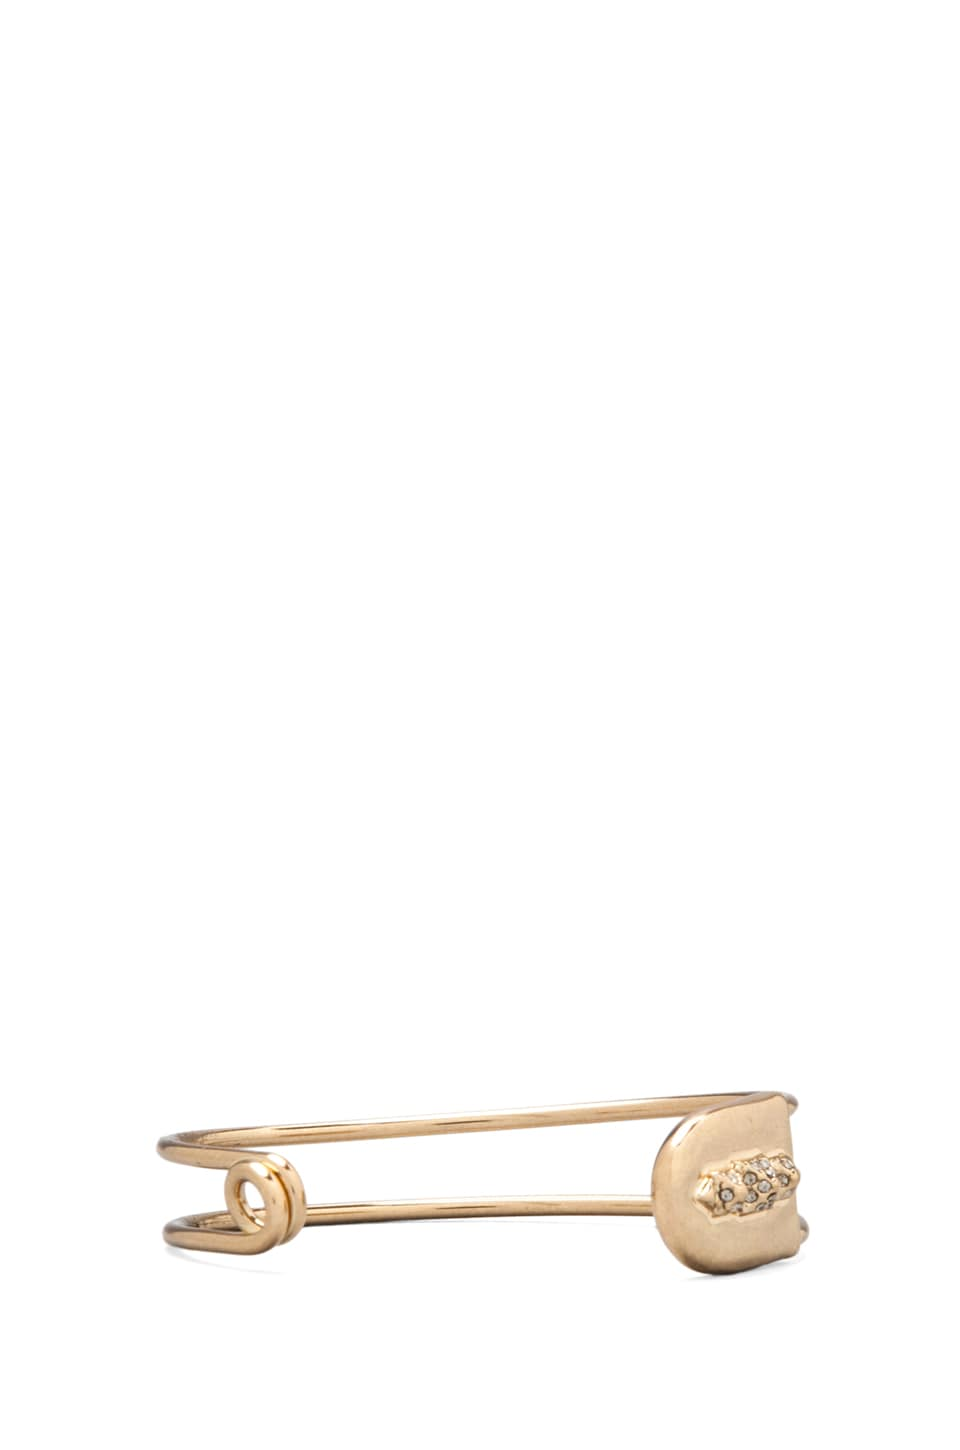 House of Harlow 1960 House of Harlow Pave Pyramid Safety Pin Cuff in Gold